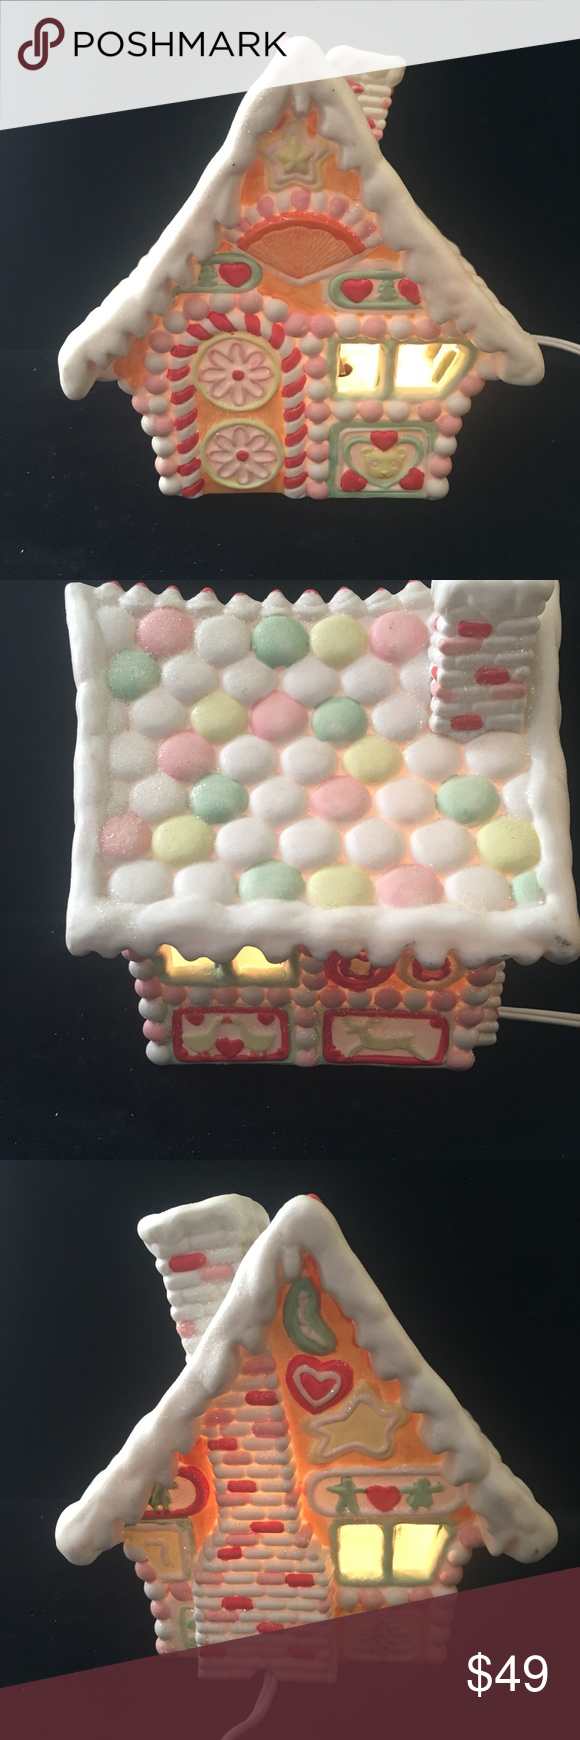 "Department 56 Lighted Candy House Christmas 1986. Department 56 Lighted Candy House Christmas Ceramics Vintage 1986.  Condition is Preowned. Please see photos for condition; no chips or cracks! Good vintage condition! Approximately 5"" W x 7"" H Department 56 Holiday Holiday Decor #department56"